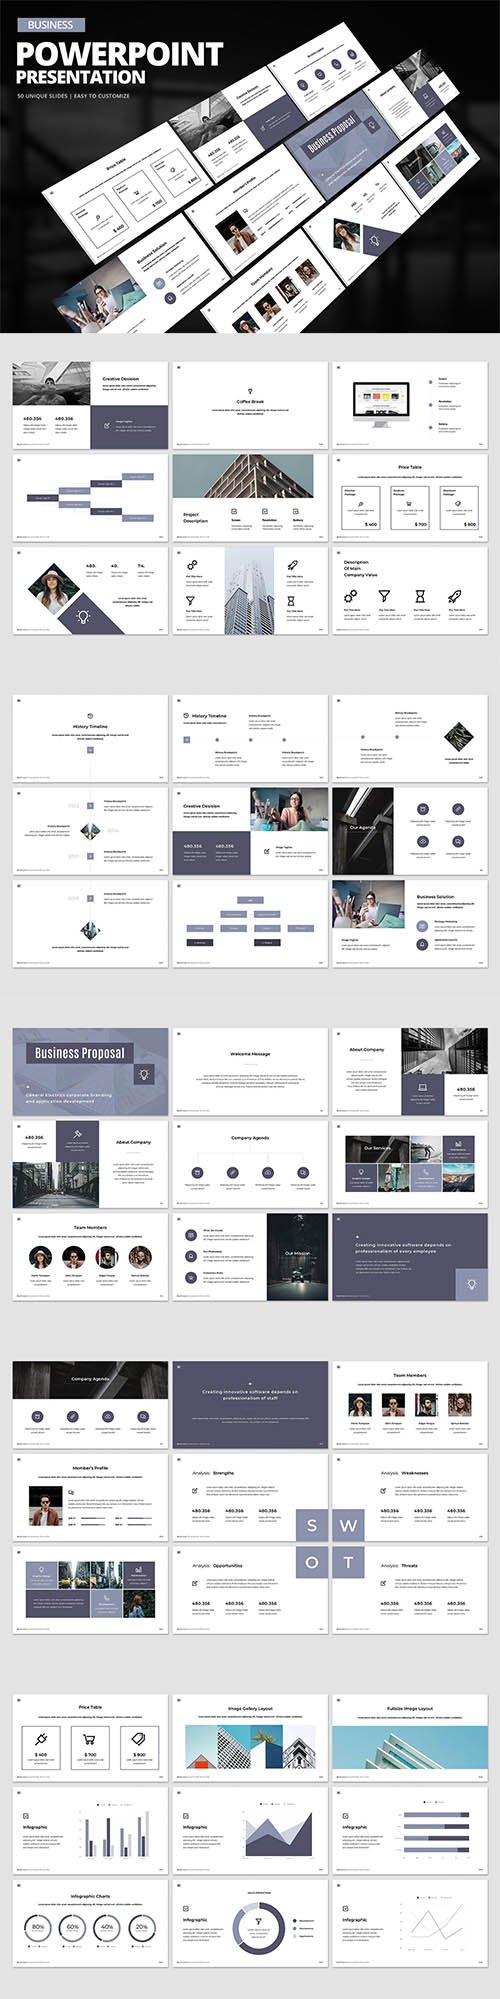 Business Powerpoint Presentation PPT